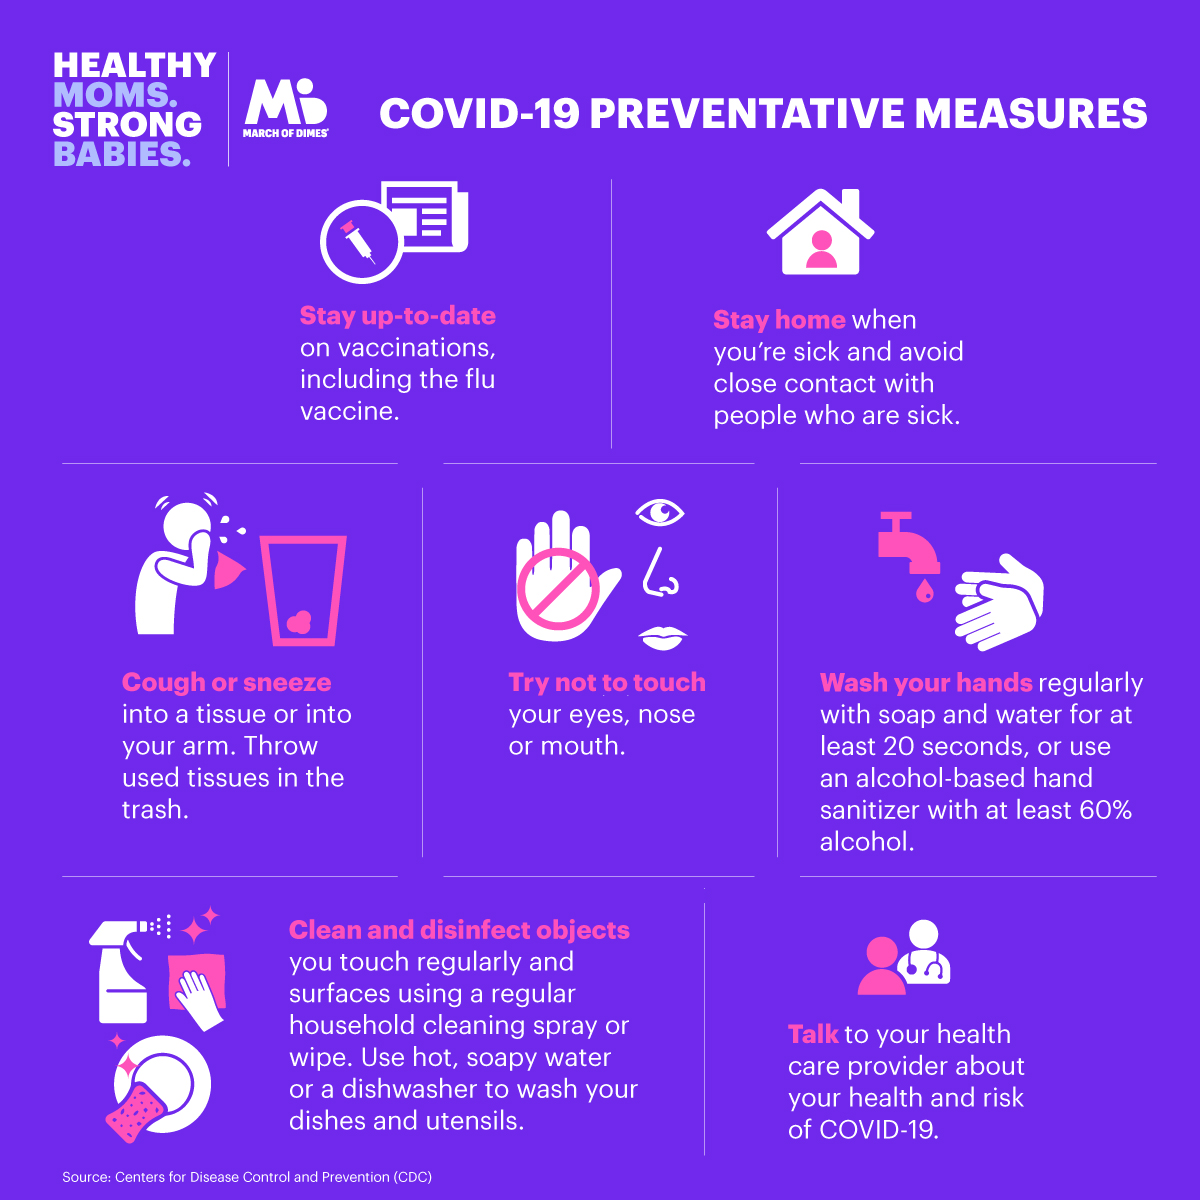 COVID-19 things to prevent